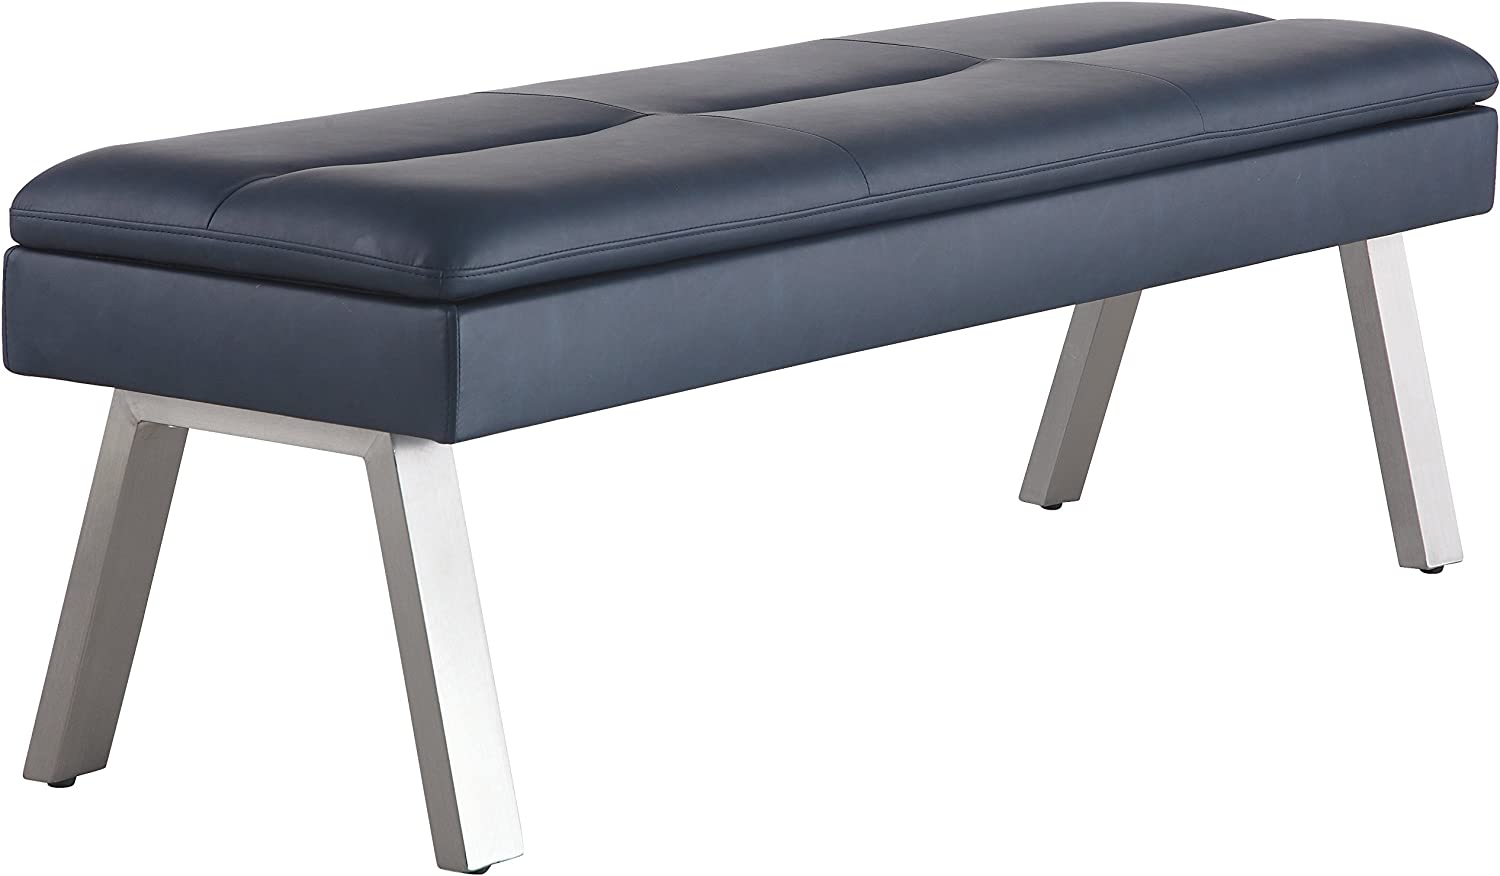 Milan Janice Blue Gray 2-Tone Bench with Storage